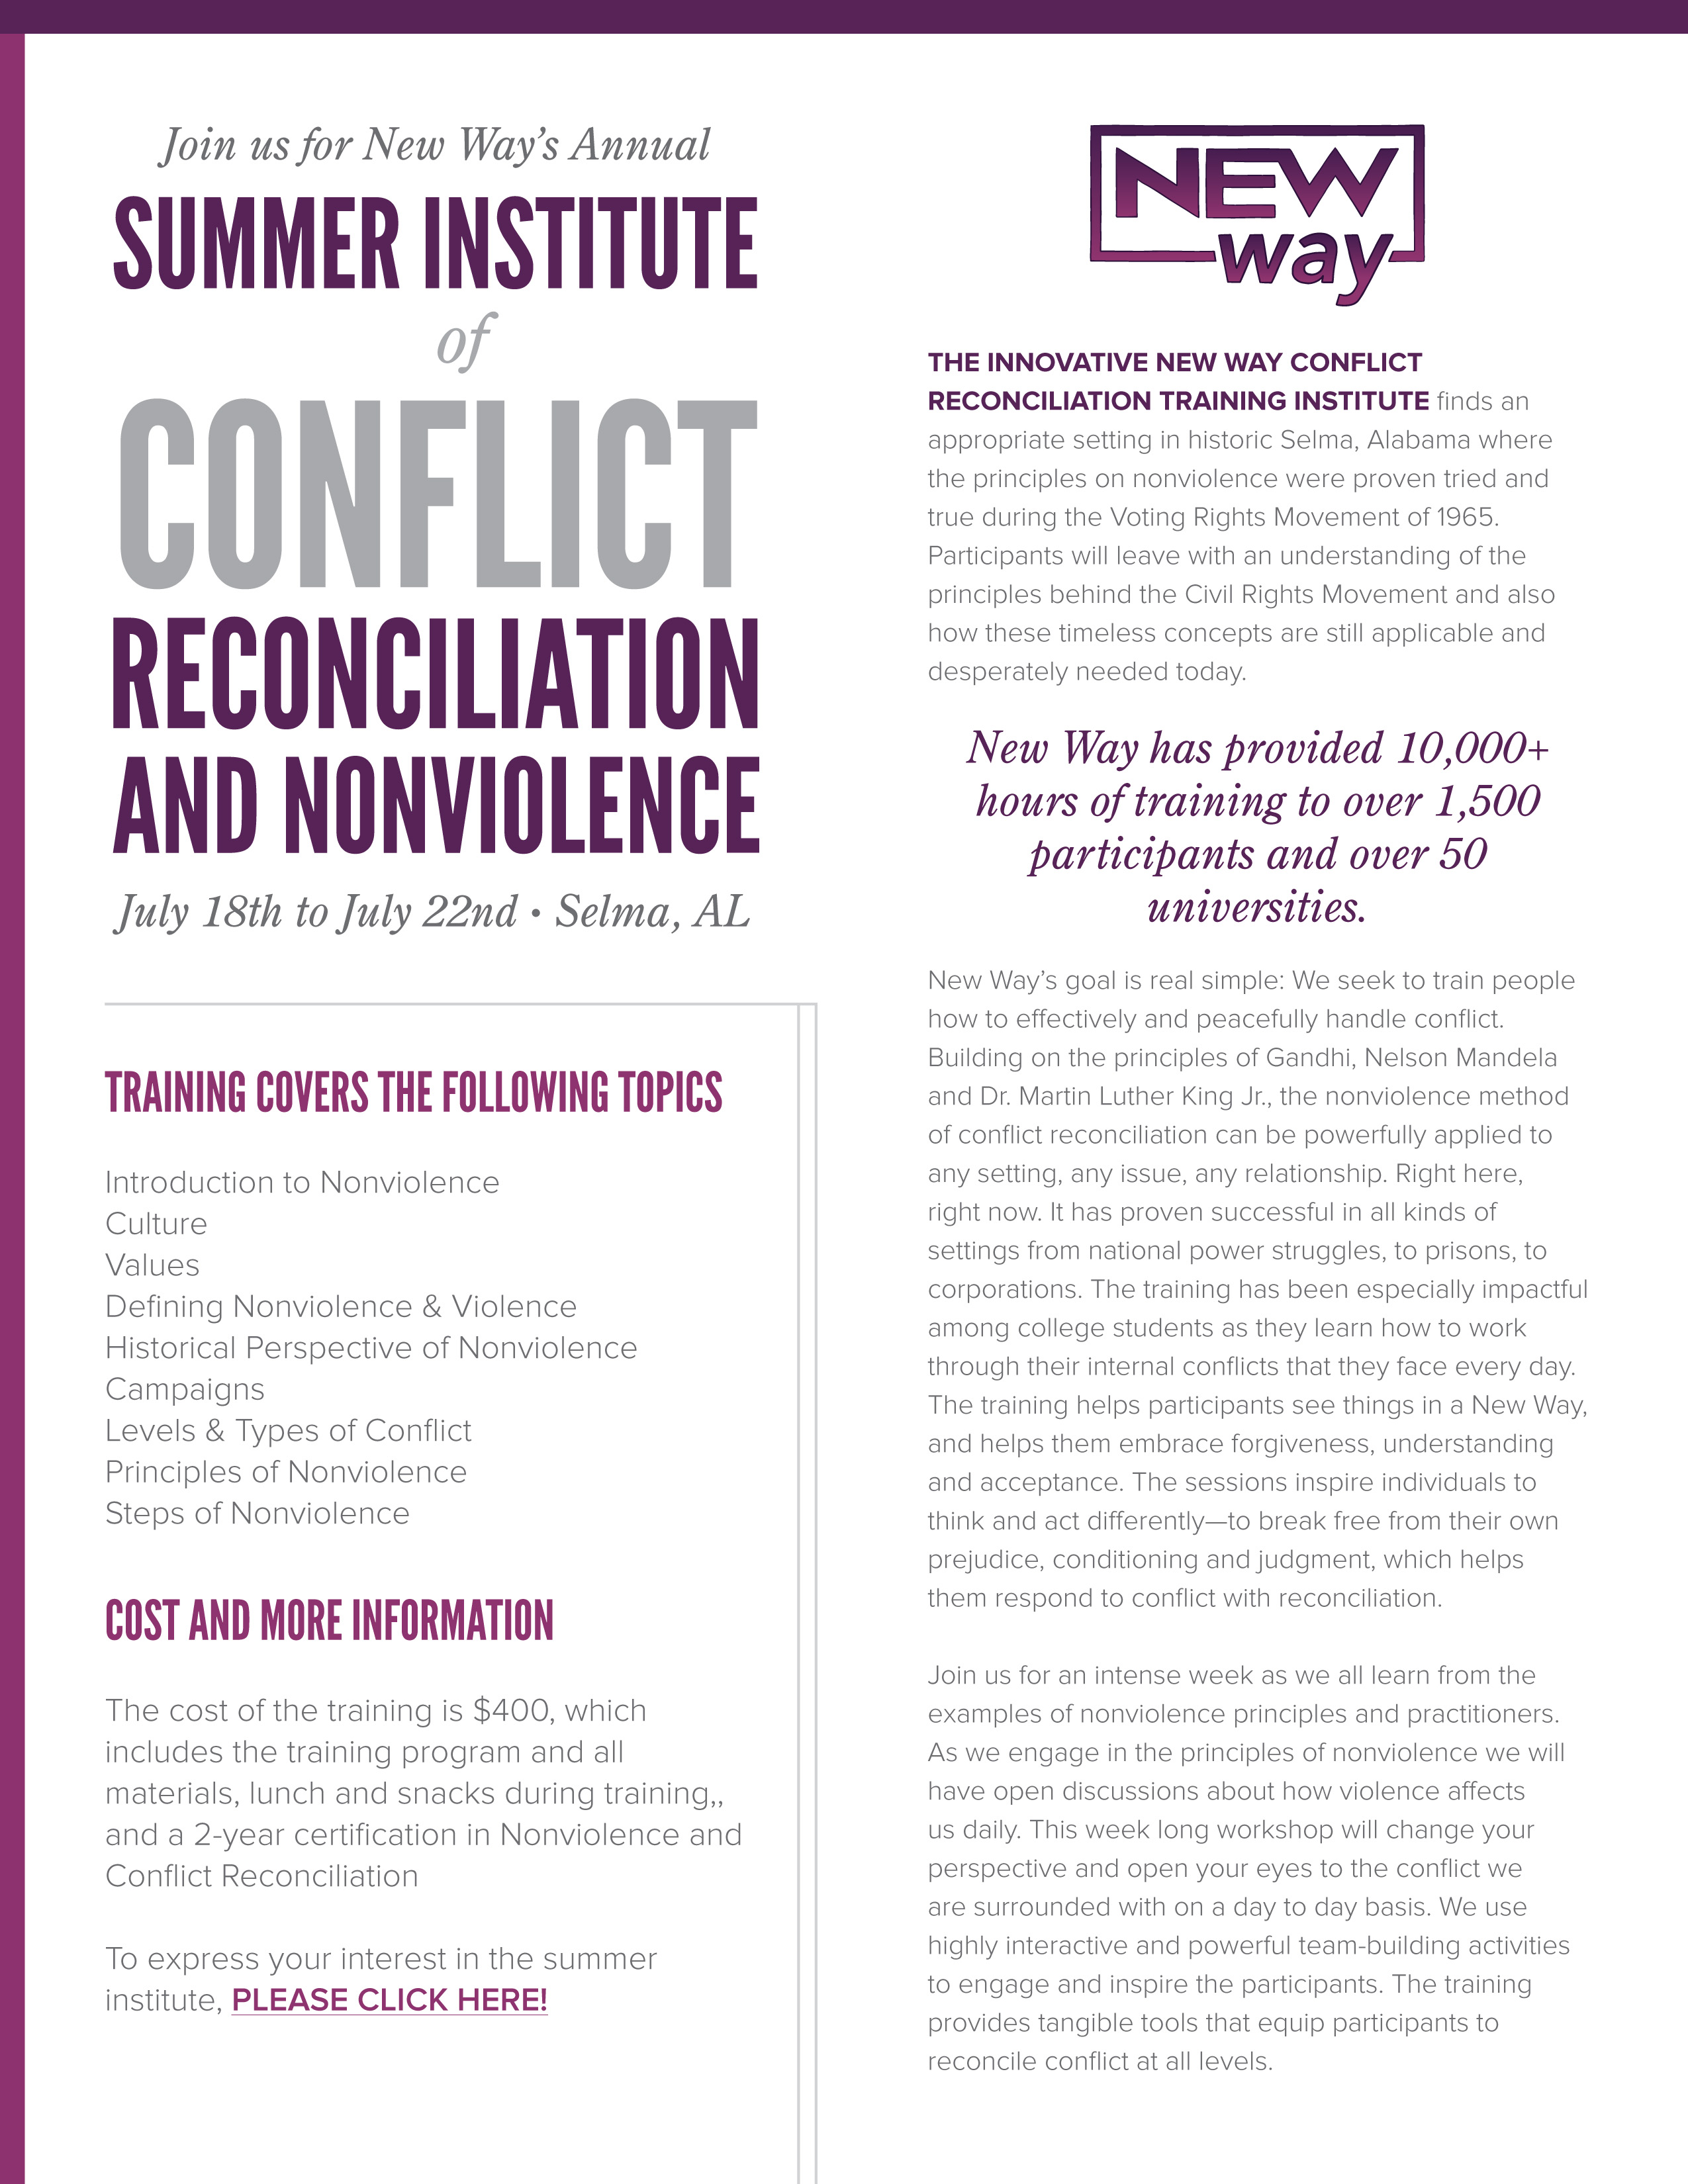 New Way, Nonviolence Training, Conflict Reconciliation, Selma, Summer Institute